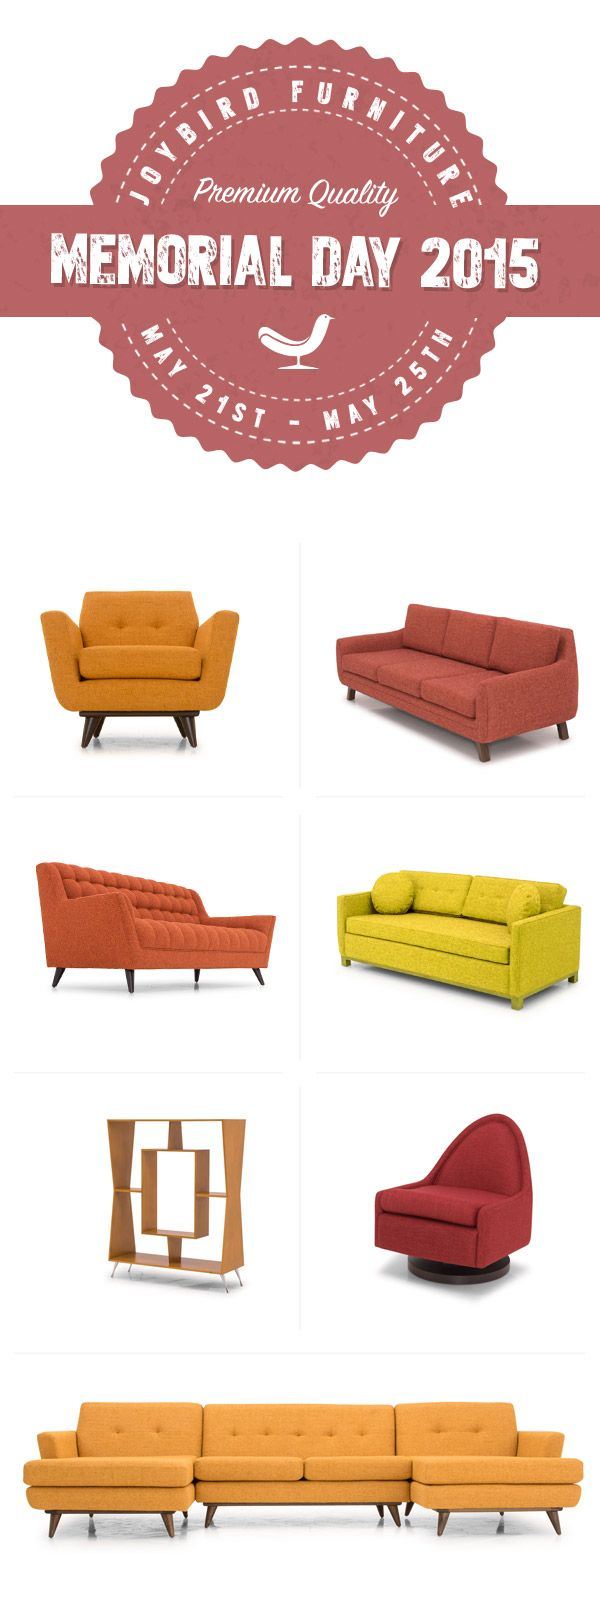 Joybird A Mid Century Modern Online Furniture Company Based Out Of L.A.  Design At Your Fingertips, We Deliver It For Free.